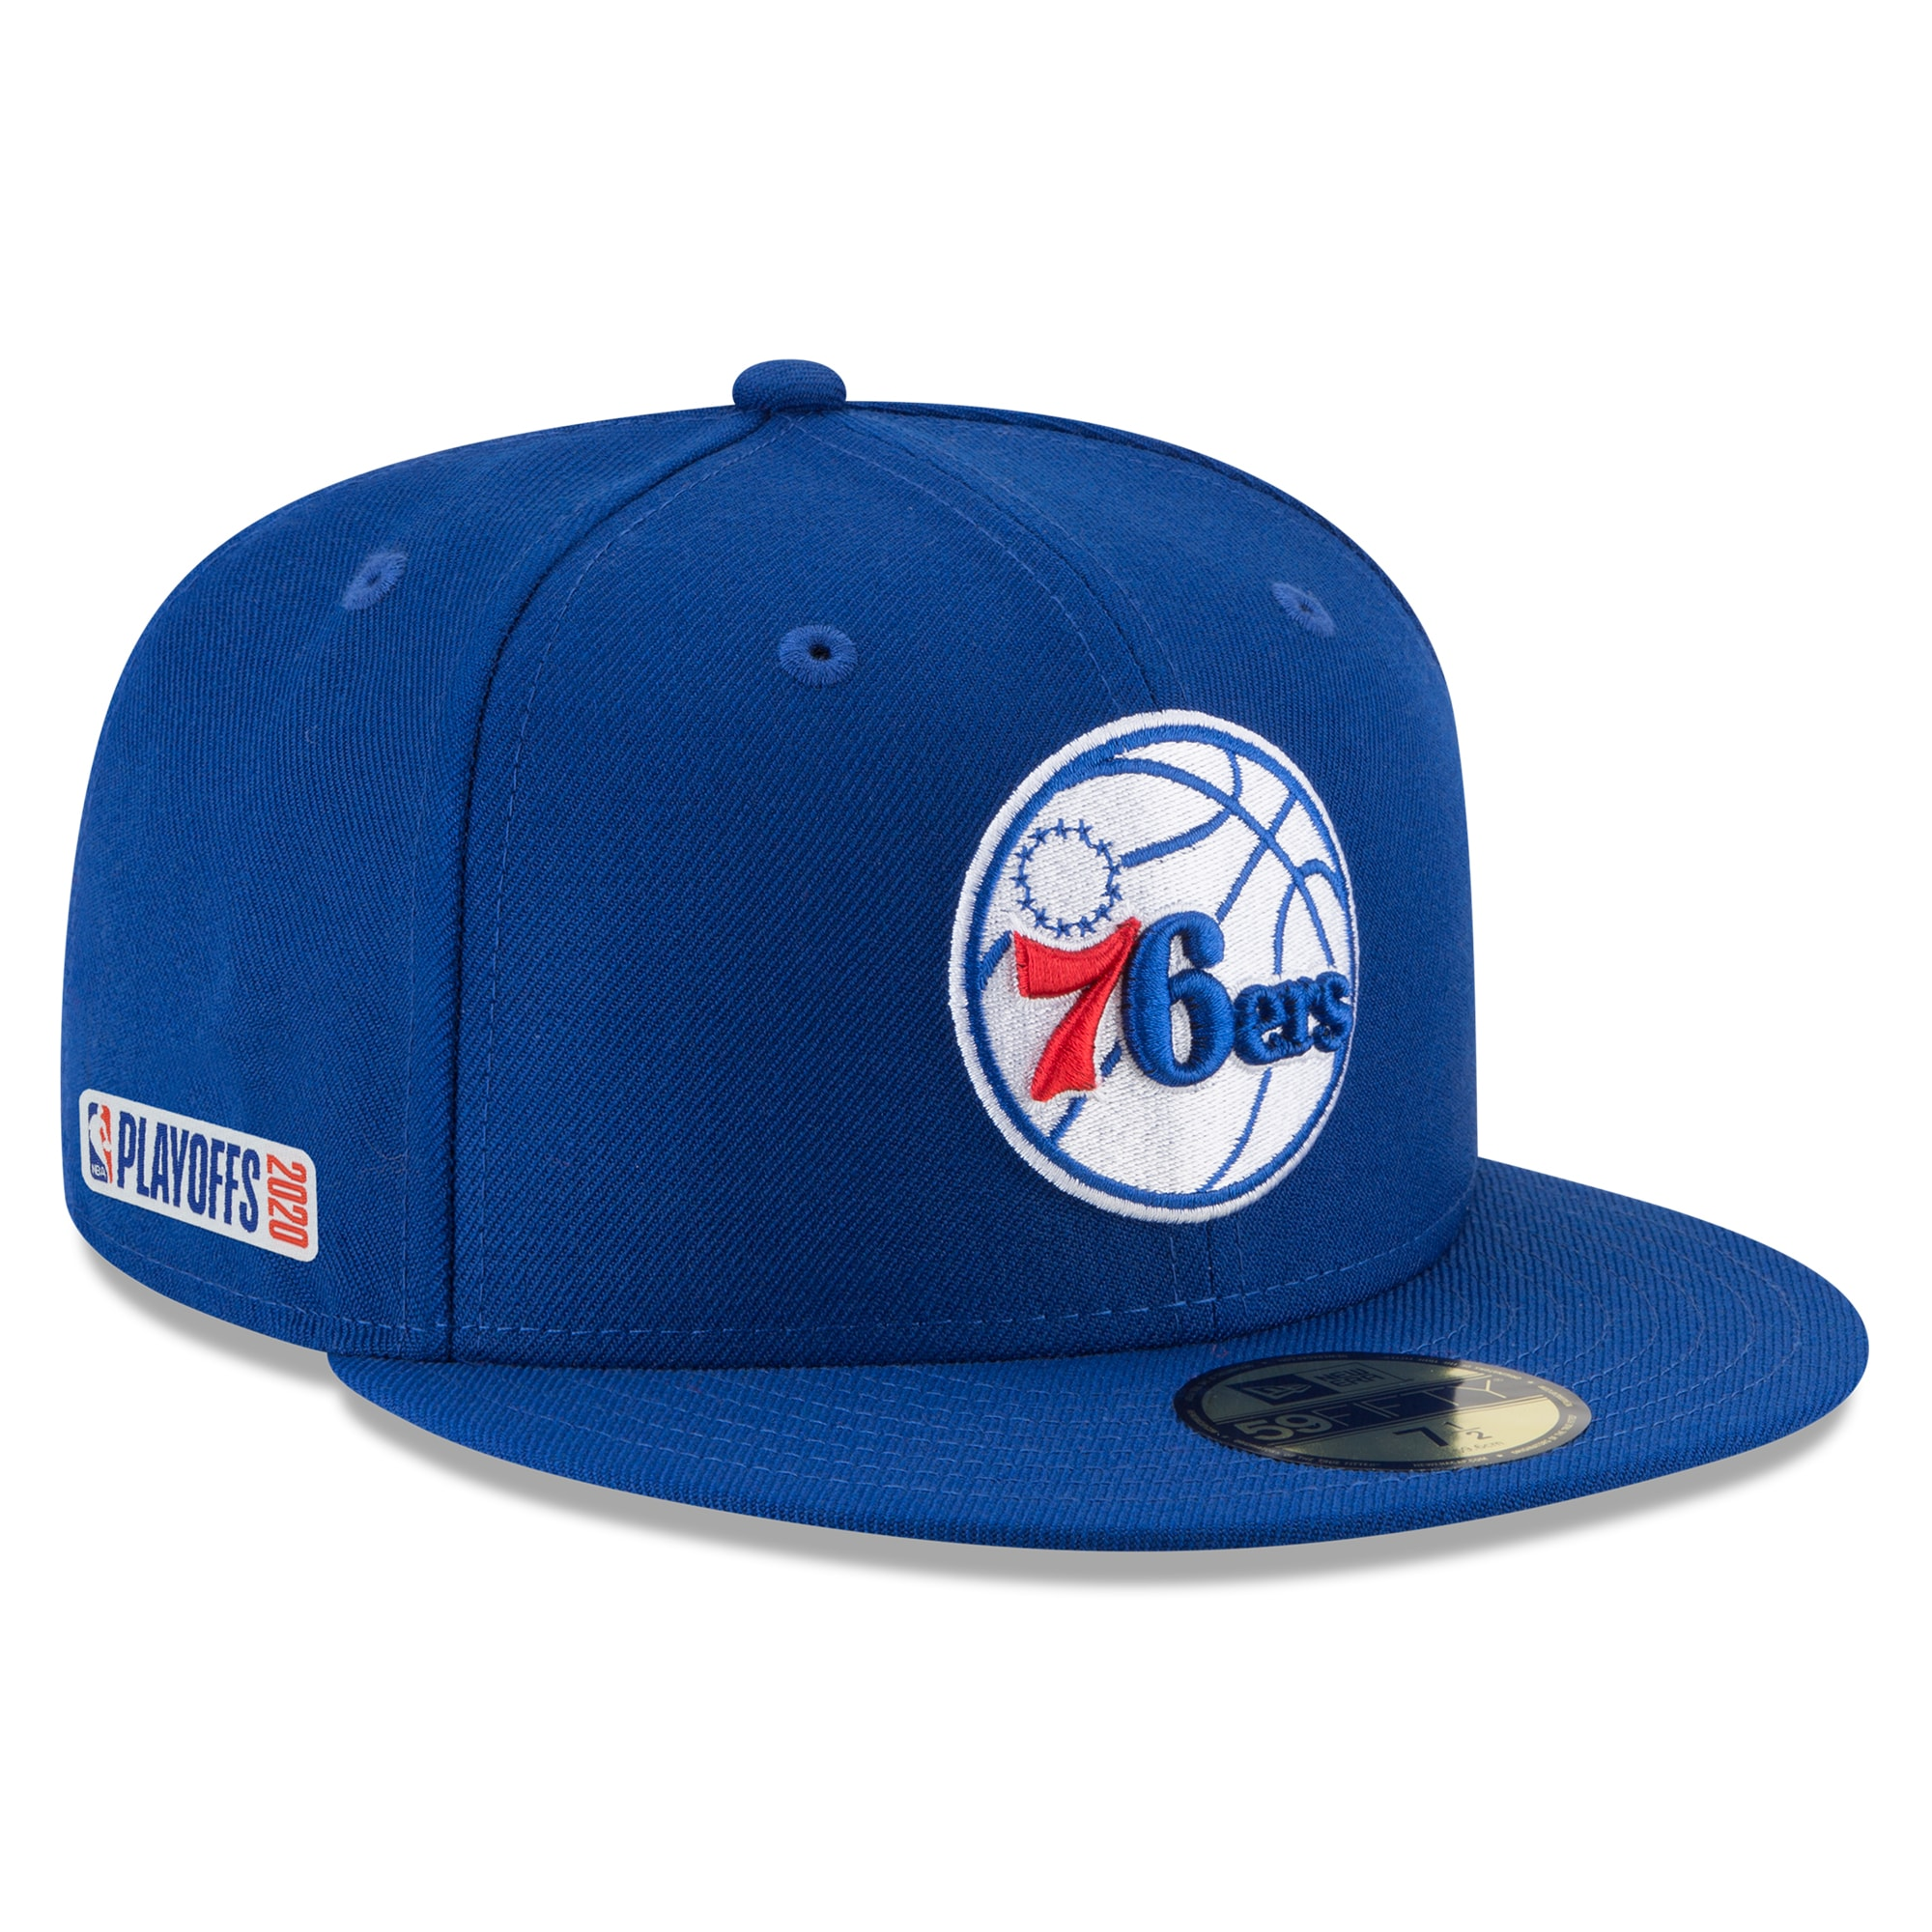 Philadelphia 76ers New Era 2020 NBA Playoffs Bound 59FIFTY Fitted Hat - Blue